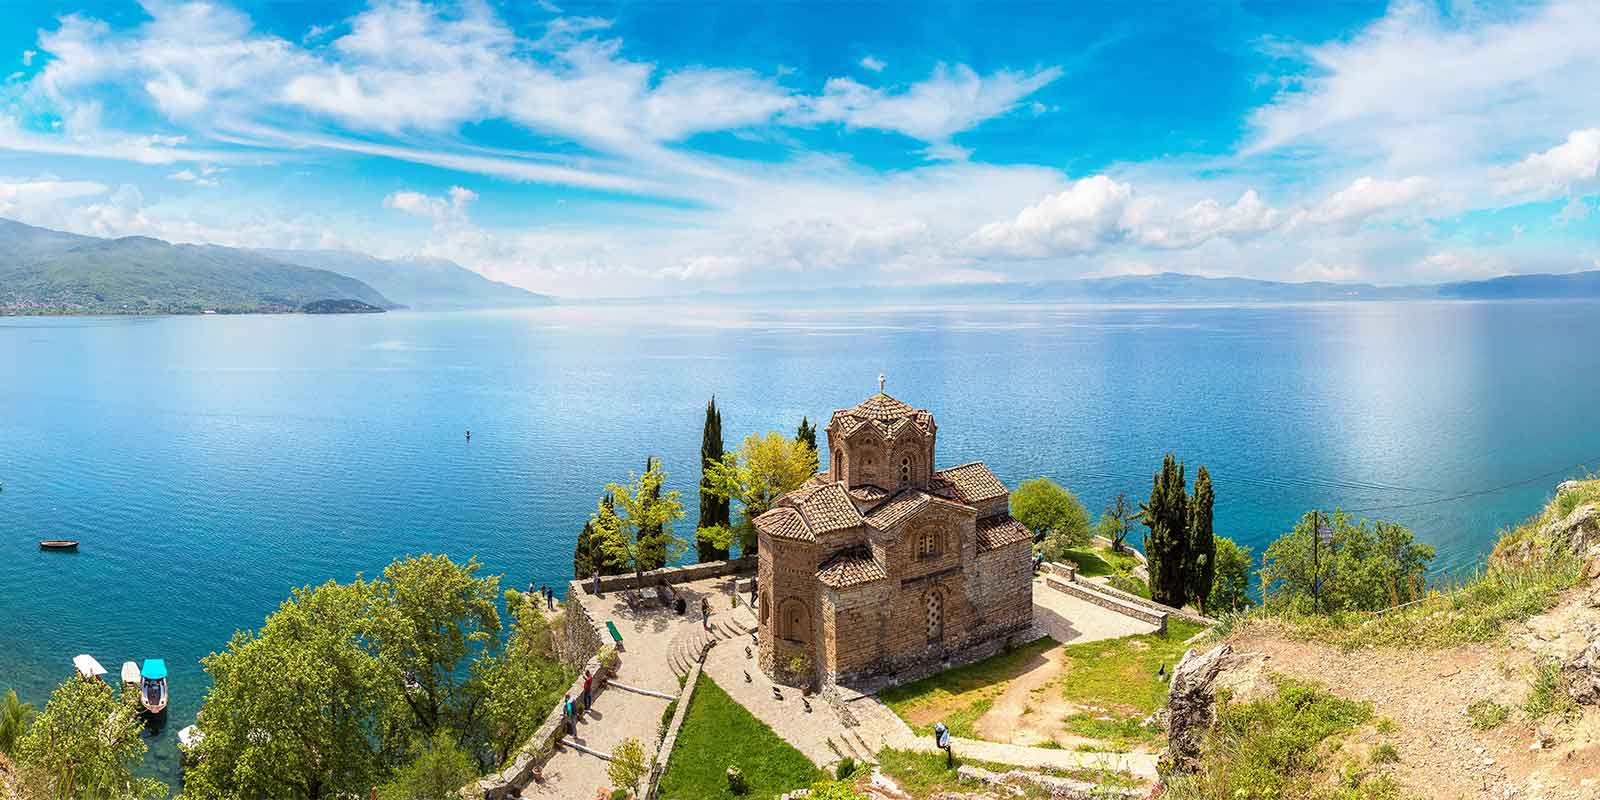 Jovan Kaneo church on promontory overlooking lake in Ohrid Macedonia